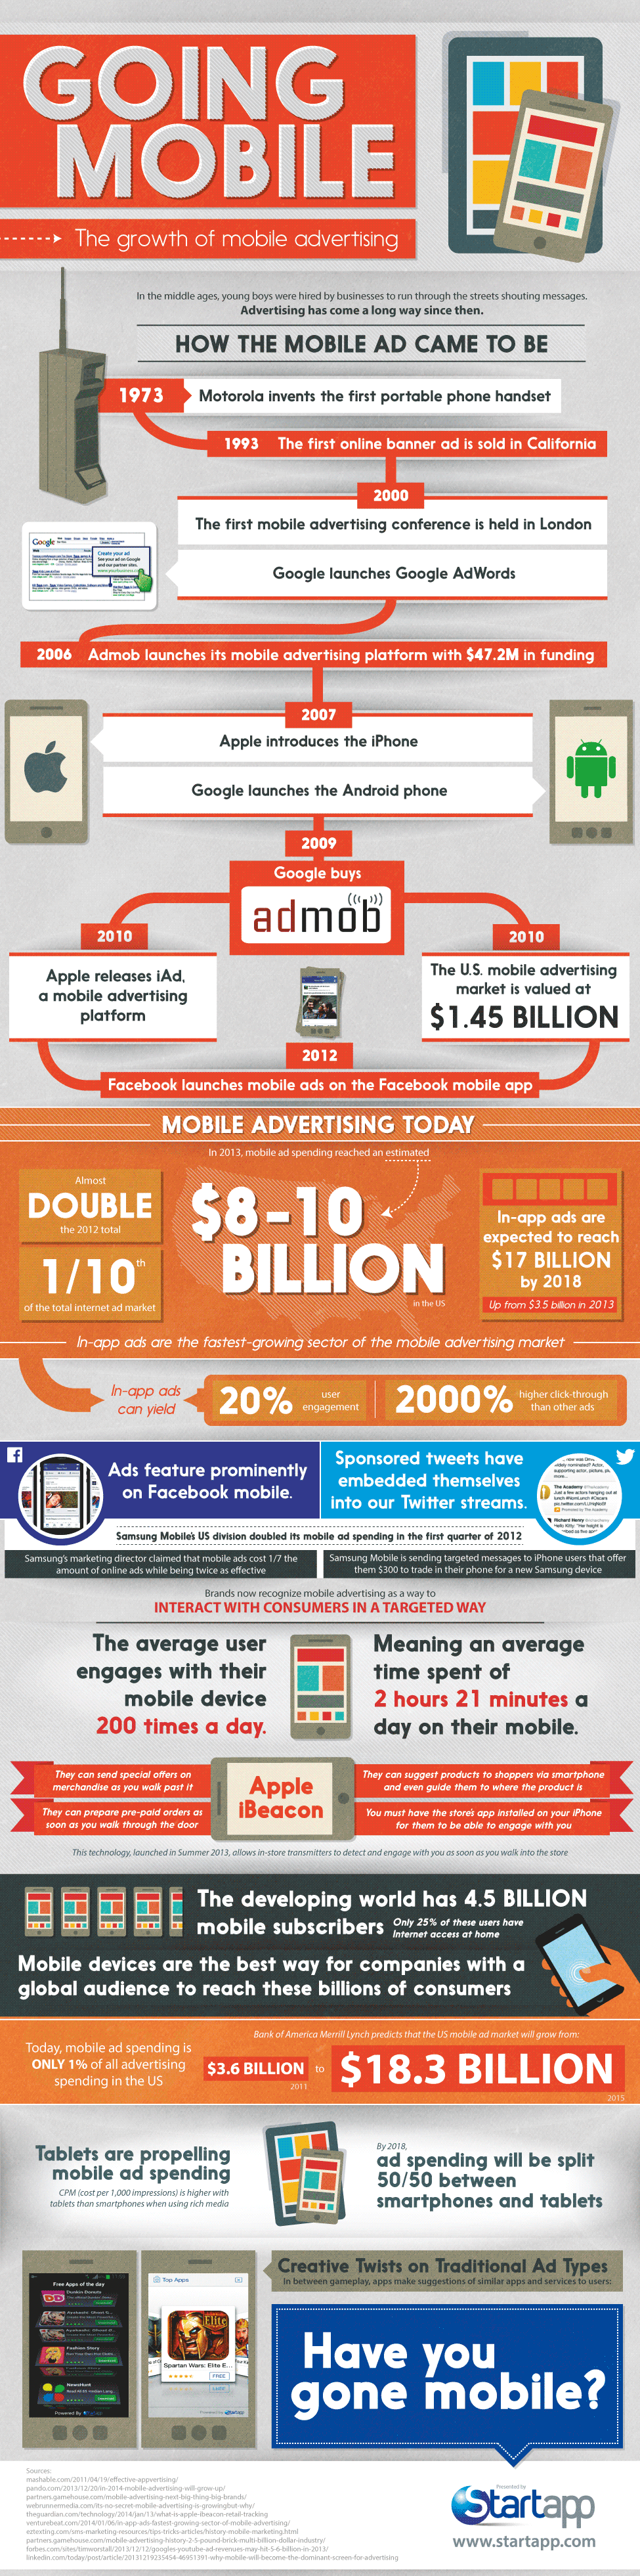 Mobile Advertising Growth 2014 [INFOGRAPHIC]